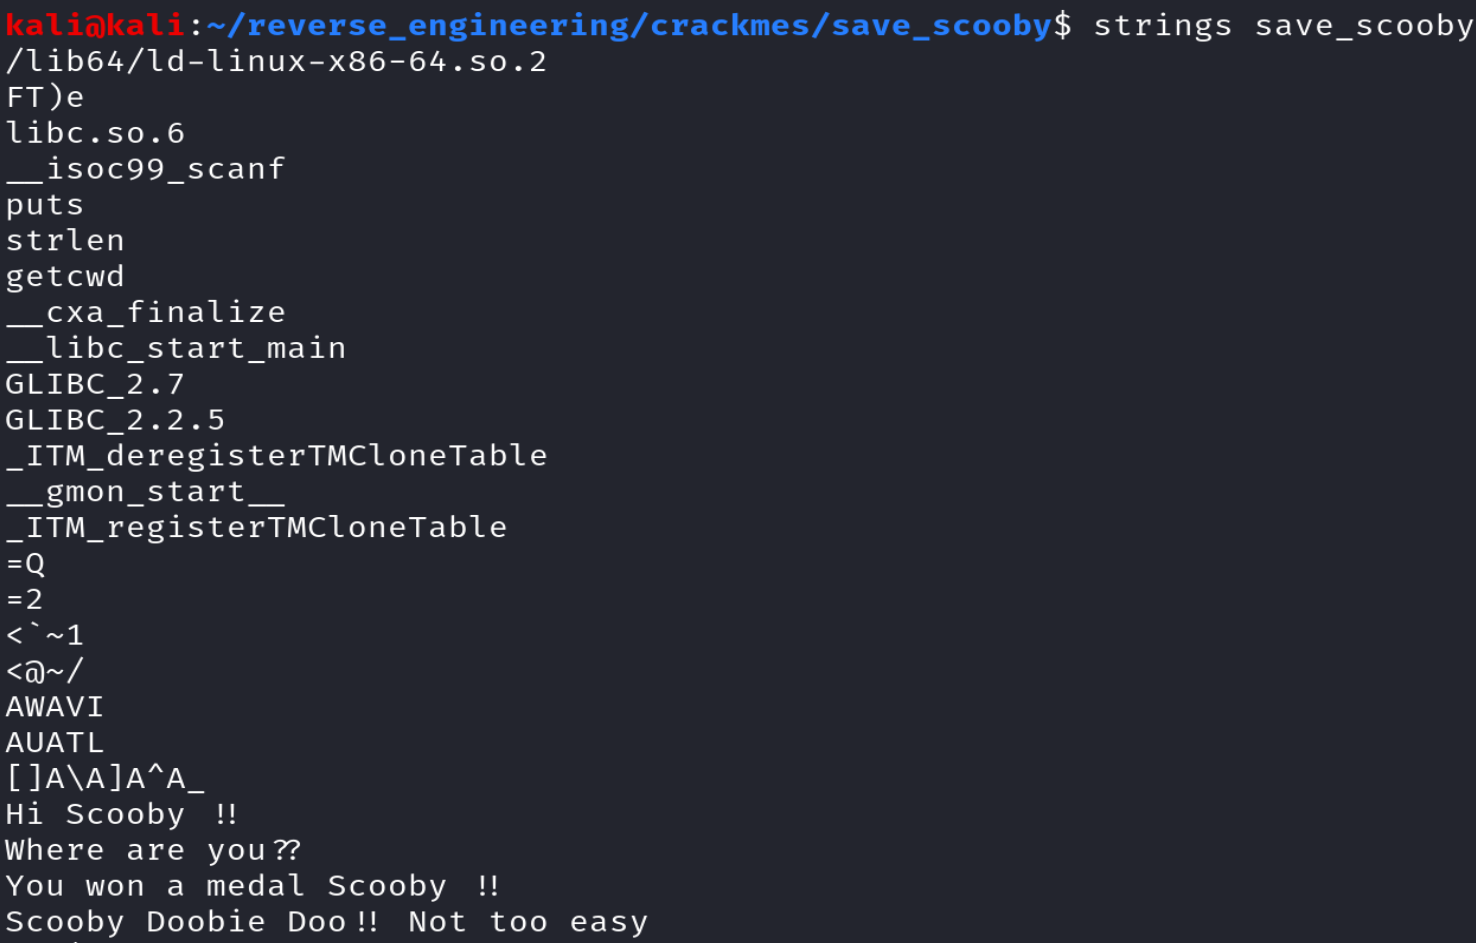 Output of running strings on the save_scooby binary